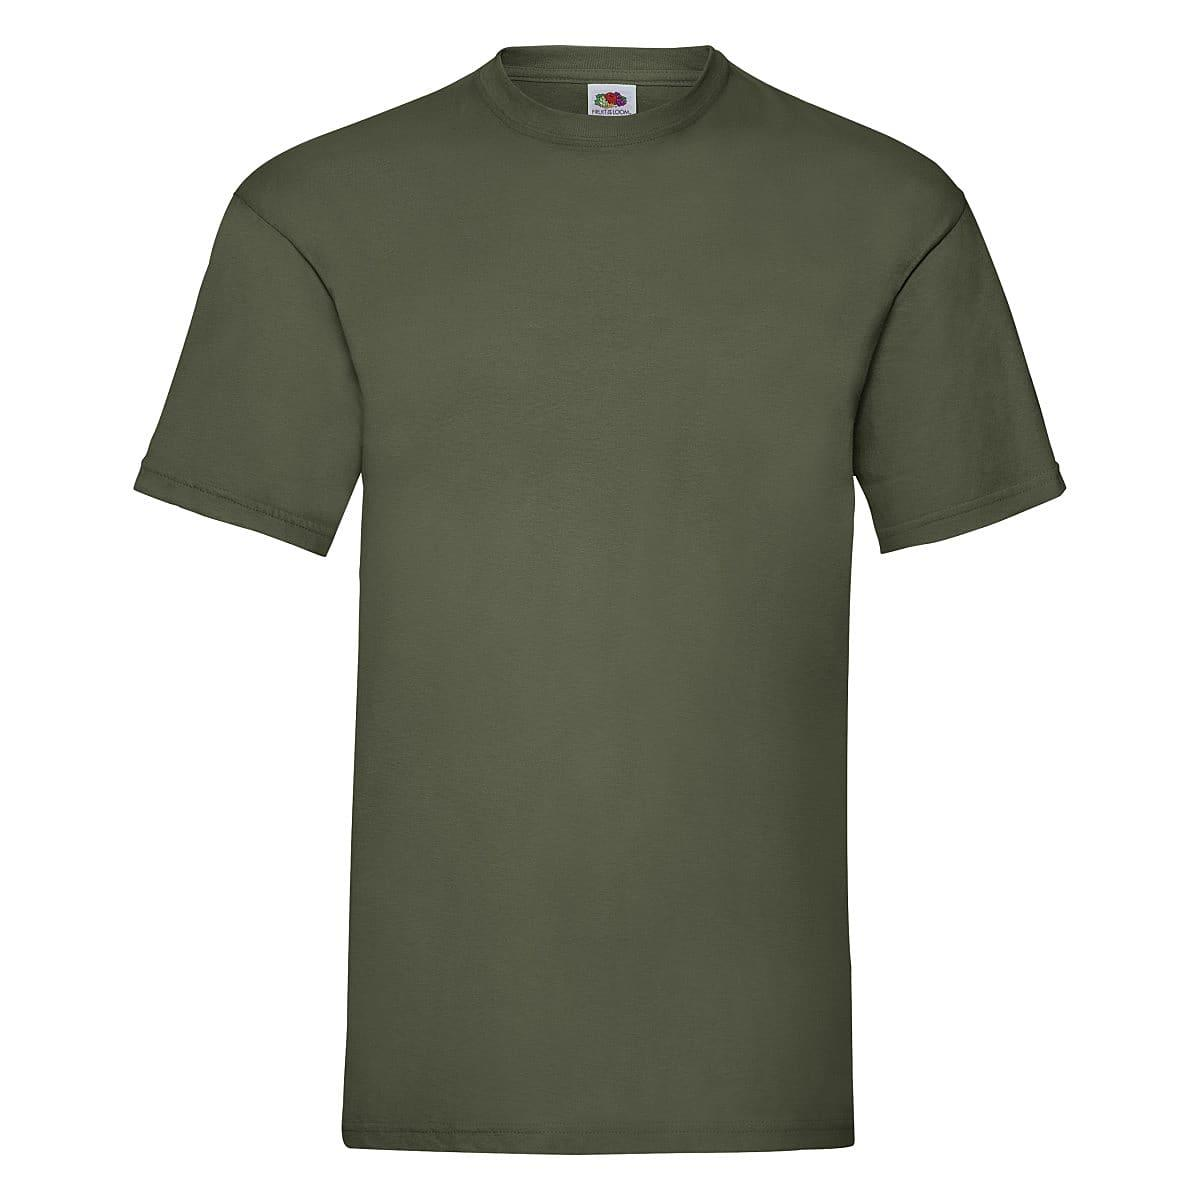 Fruit Of The Loom Valueweight T-Shirt in Classic Olive (Product Code: 61036)